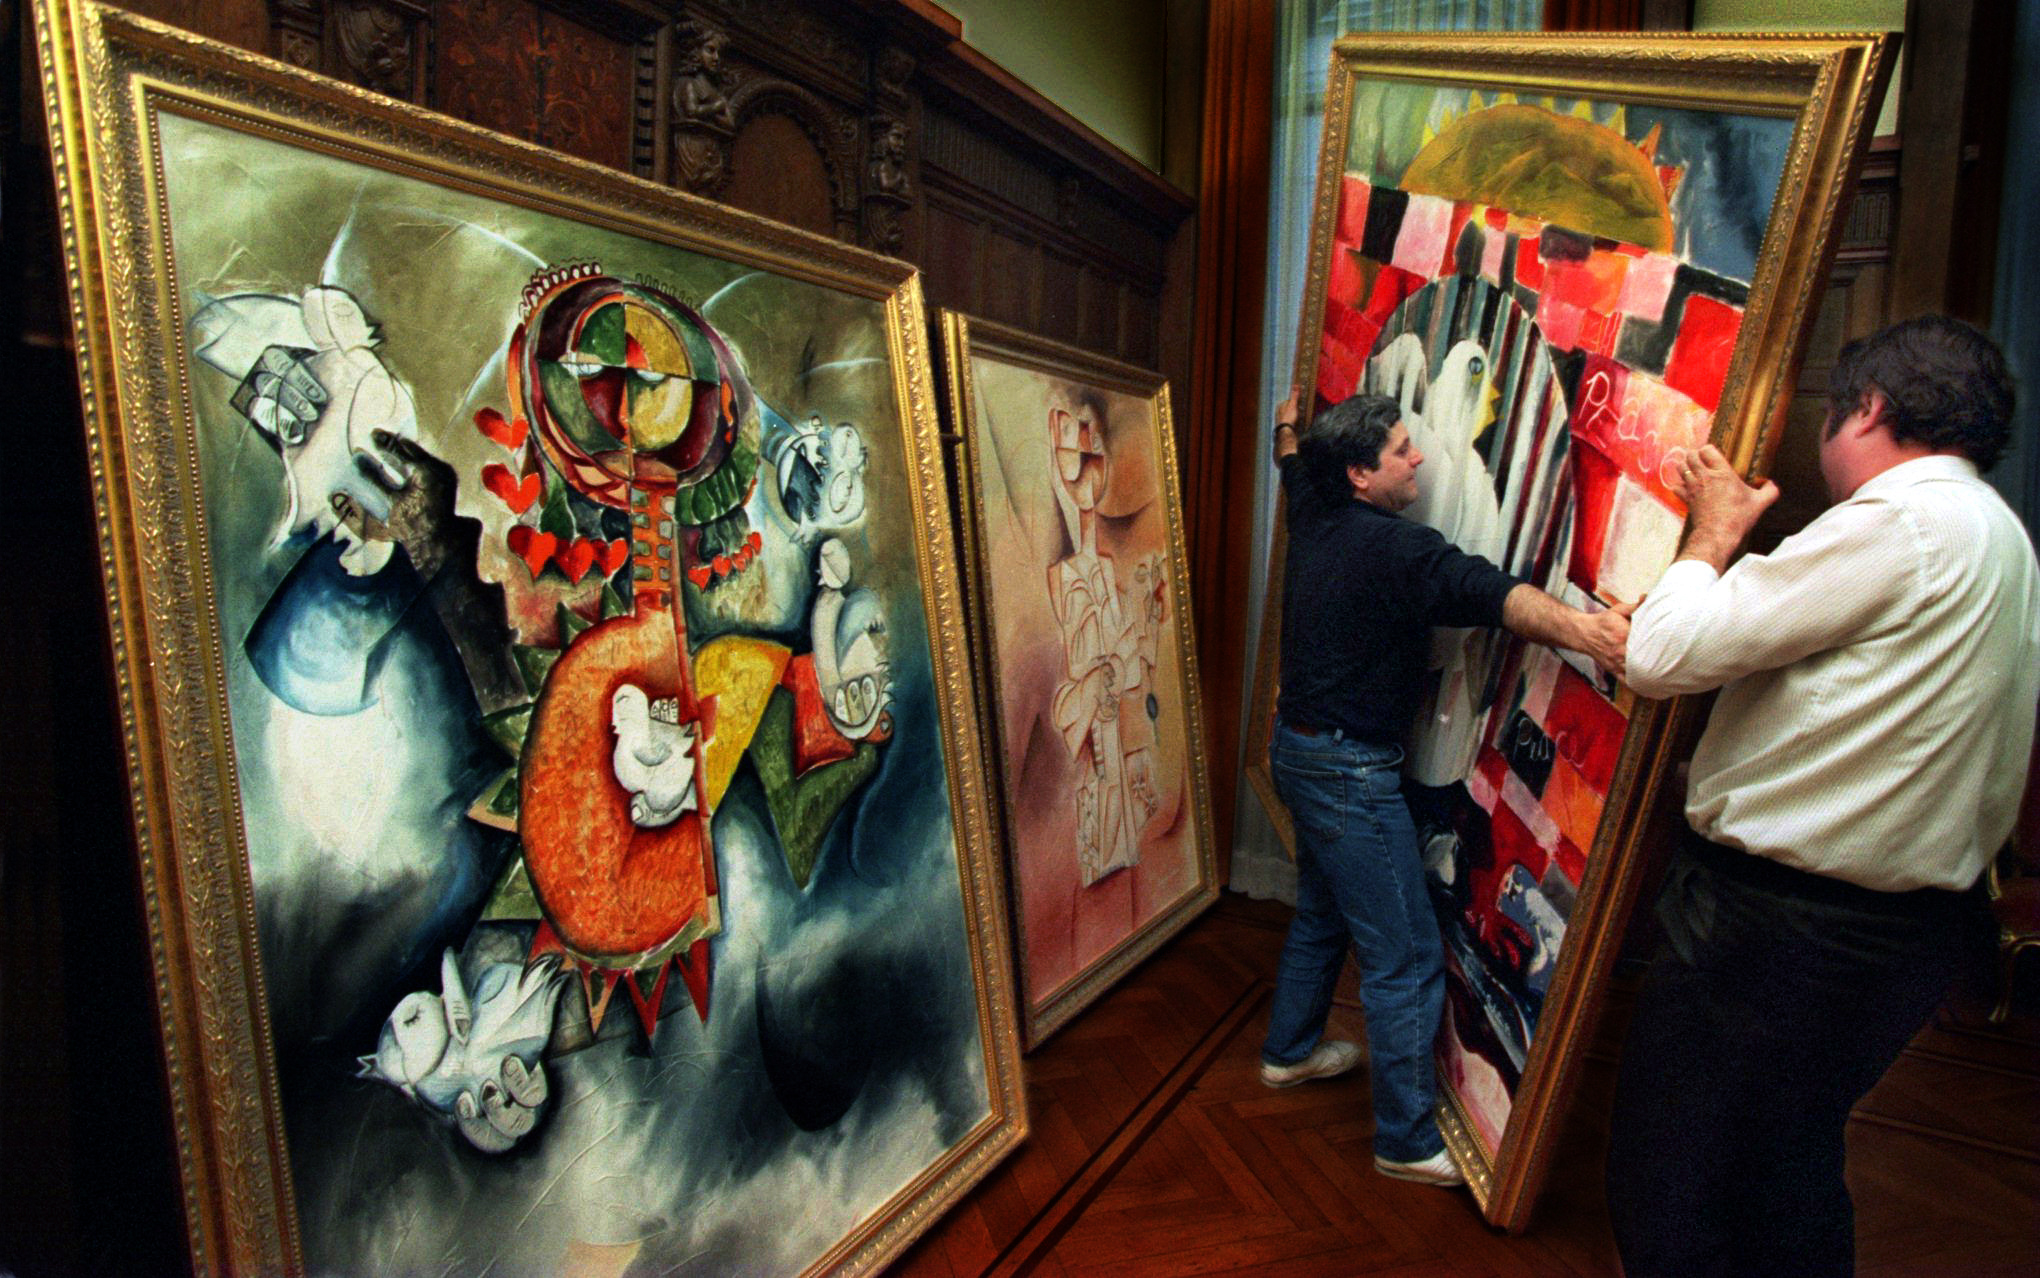 Alexandra Nechita's paintings were recovered from customs and displayed in the Romanian Embassy barely in time for media and dignitaries to view during a reception held on the last evening of their tour in London. ©Gail Fisher Los Angeles Times